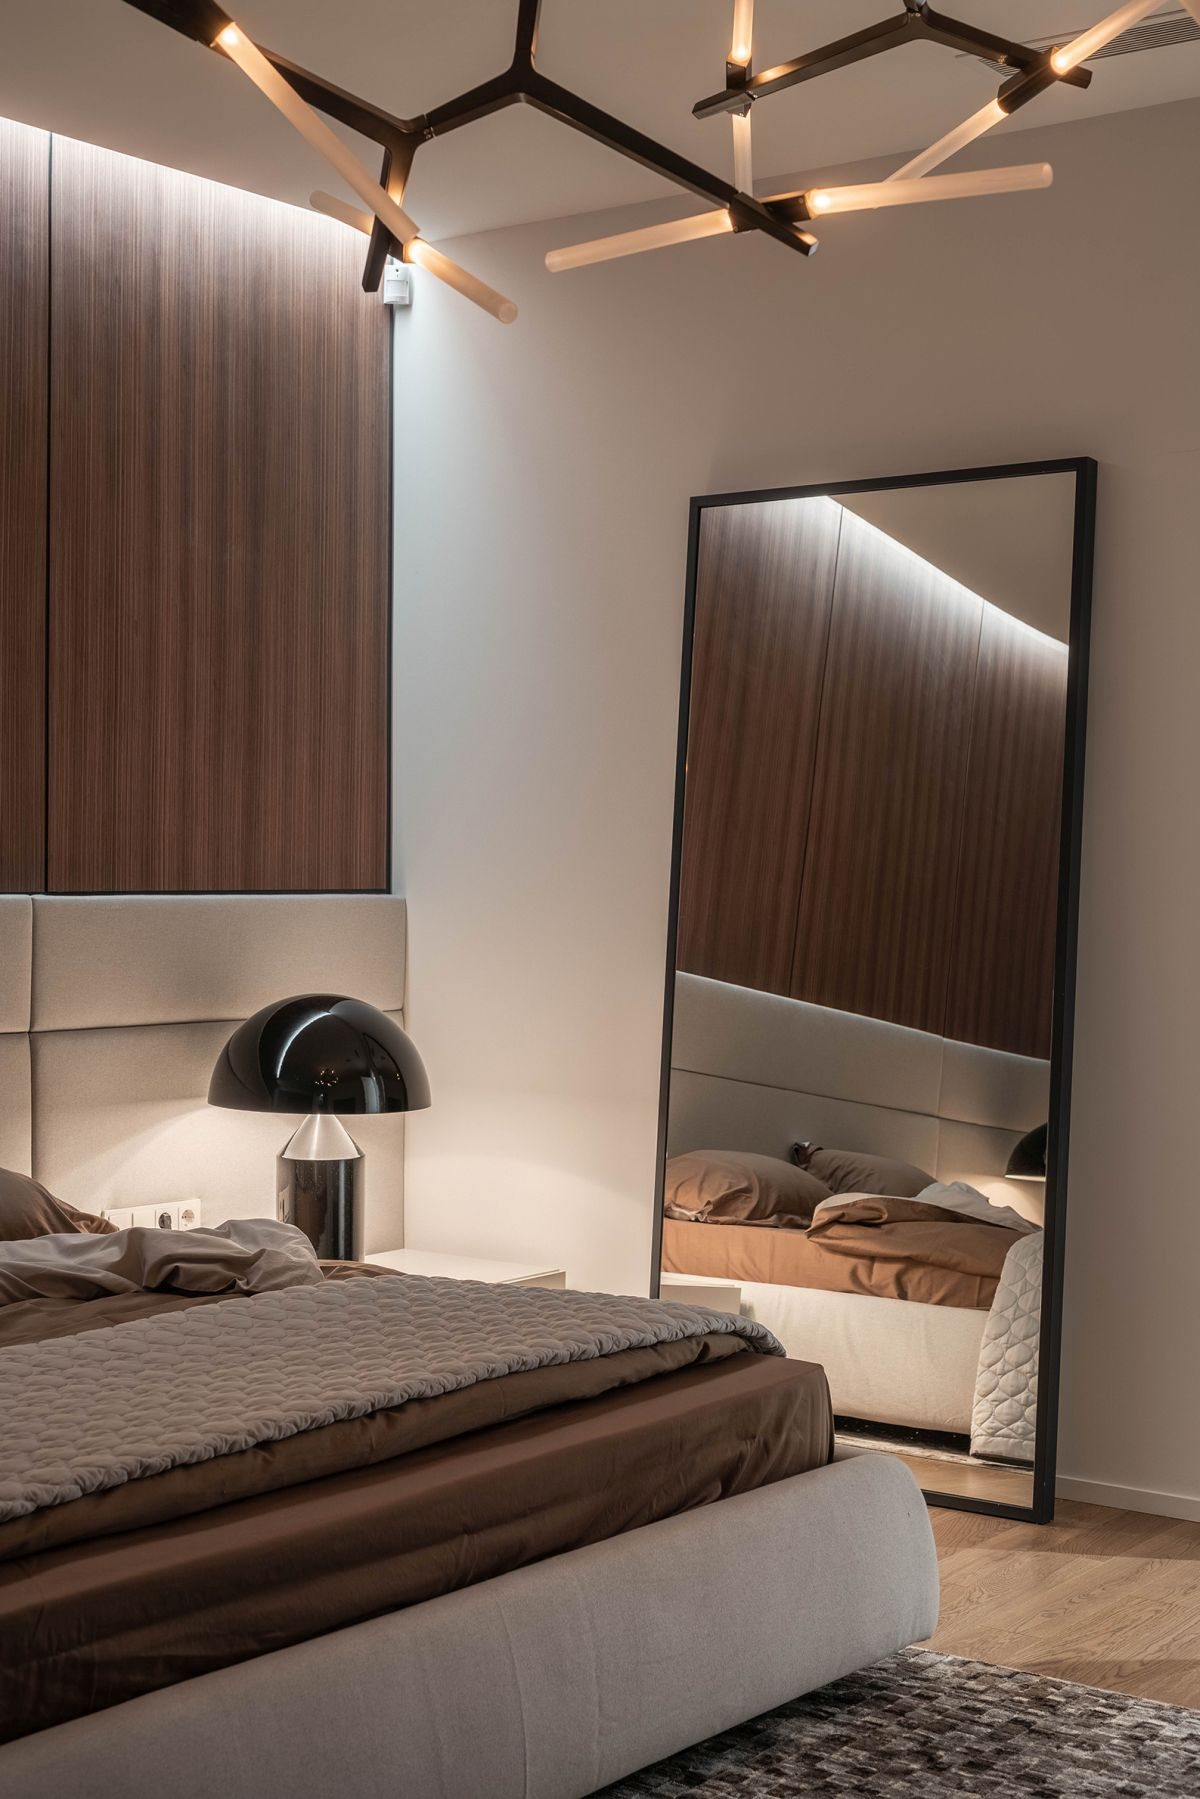 A large mirror casually leans against the wall, adding depth and elegant to this bedroom